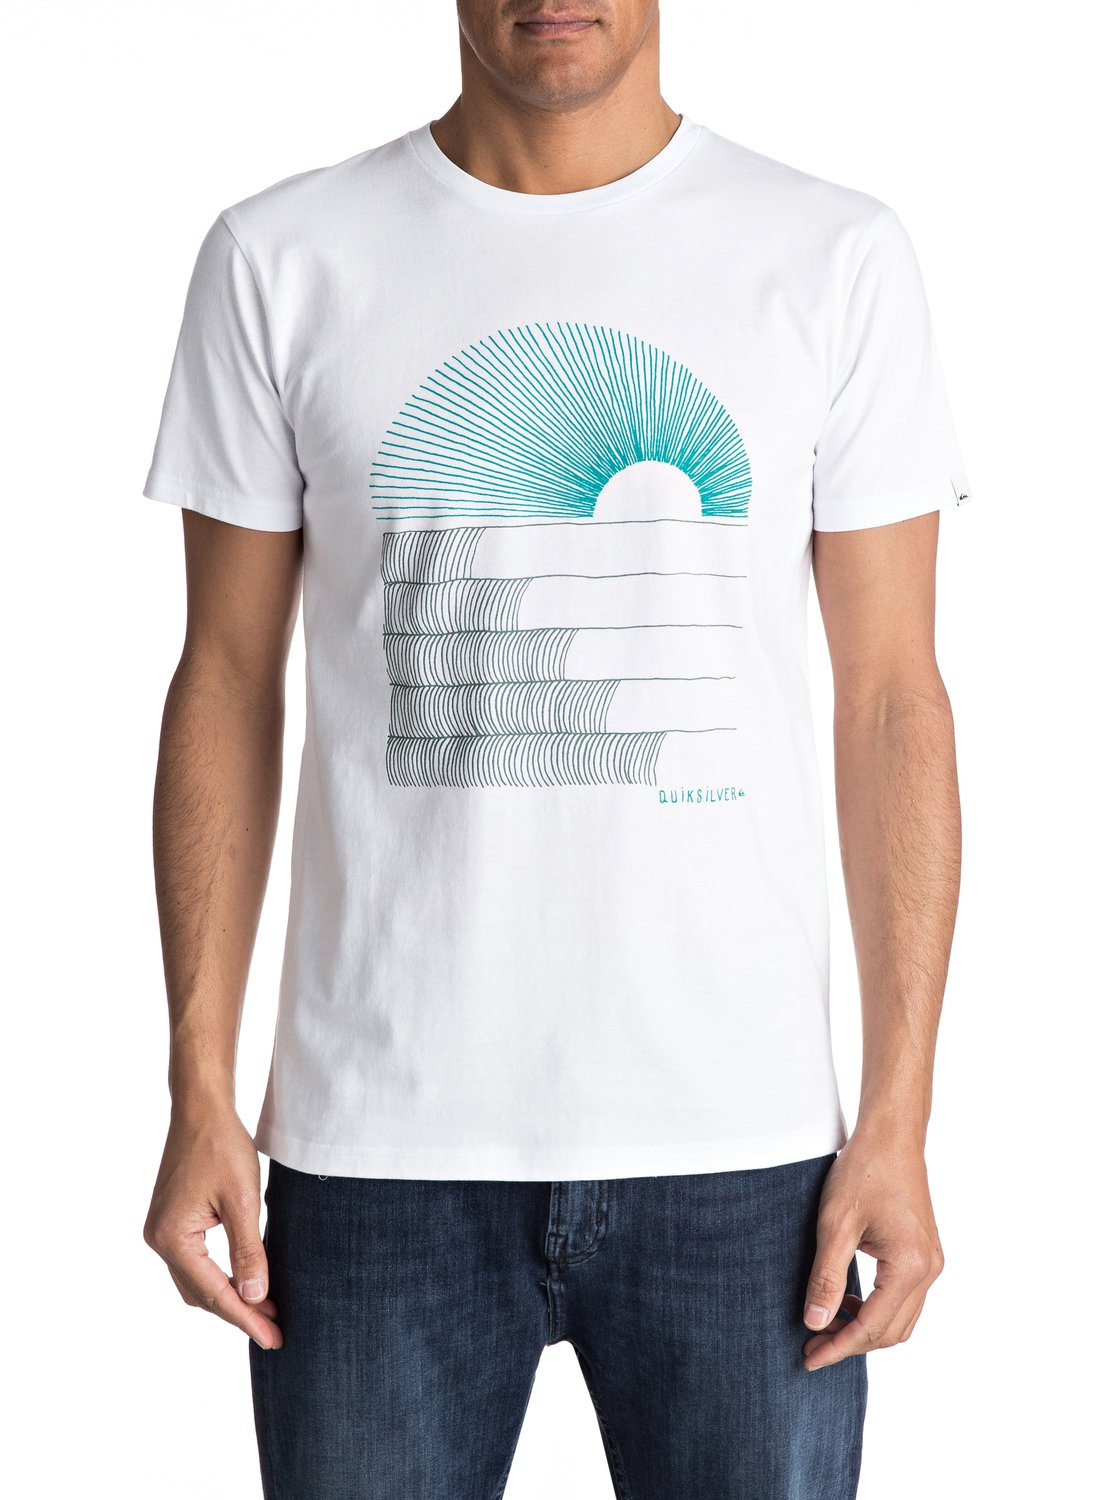 Quiksilver-Sust-East-Morning-Glide-Camiseta-para-Hombre-EQYZT04550